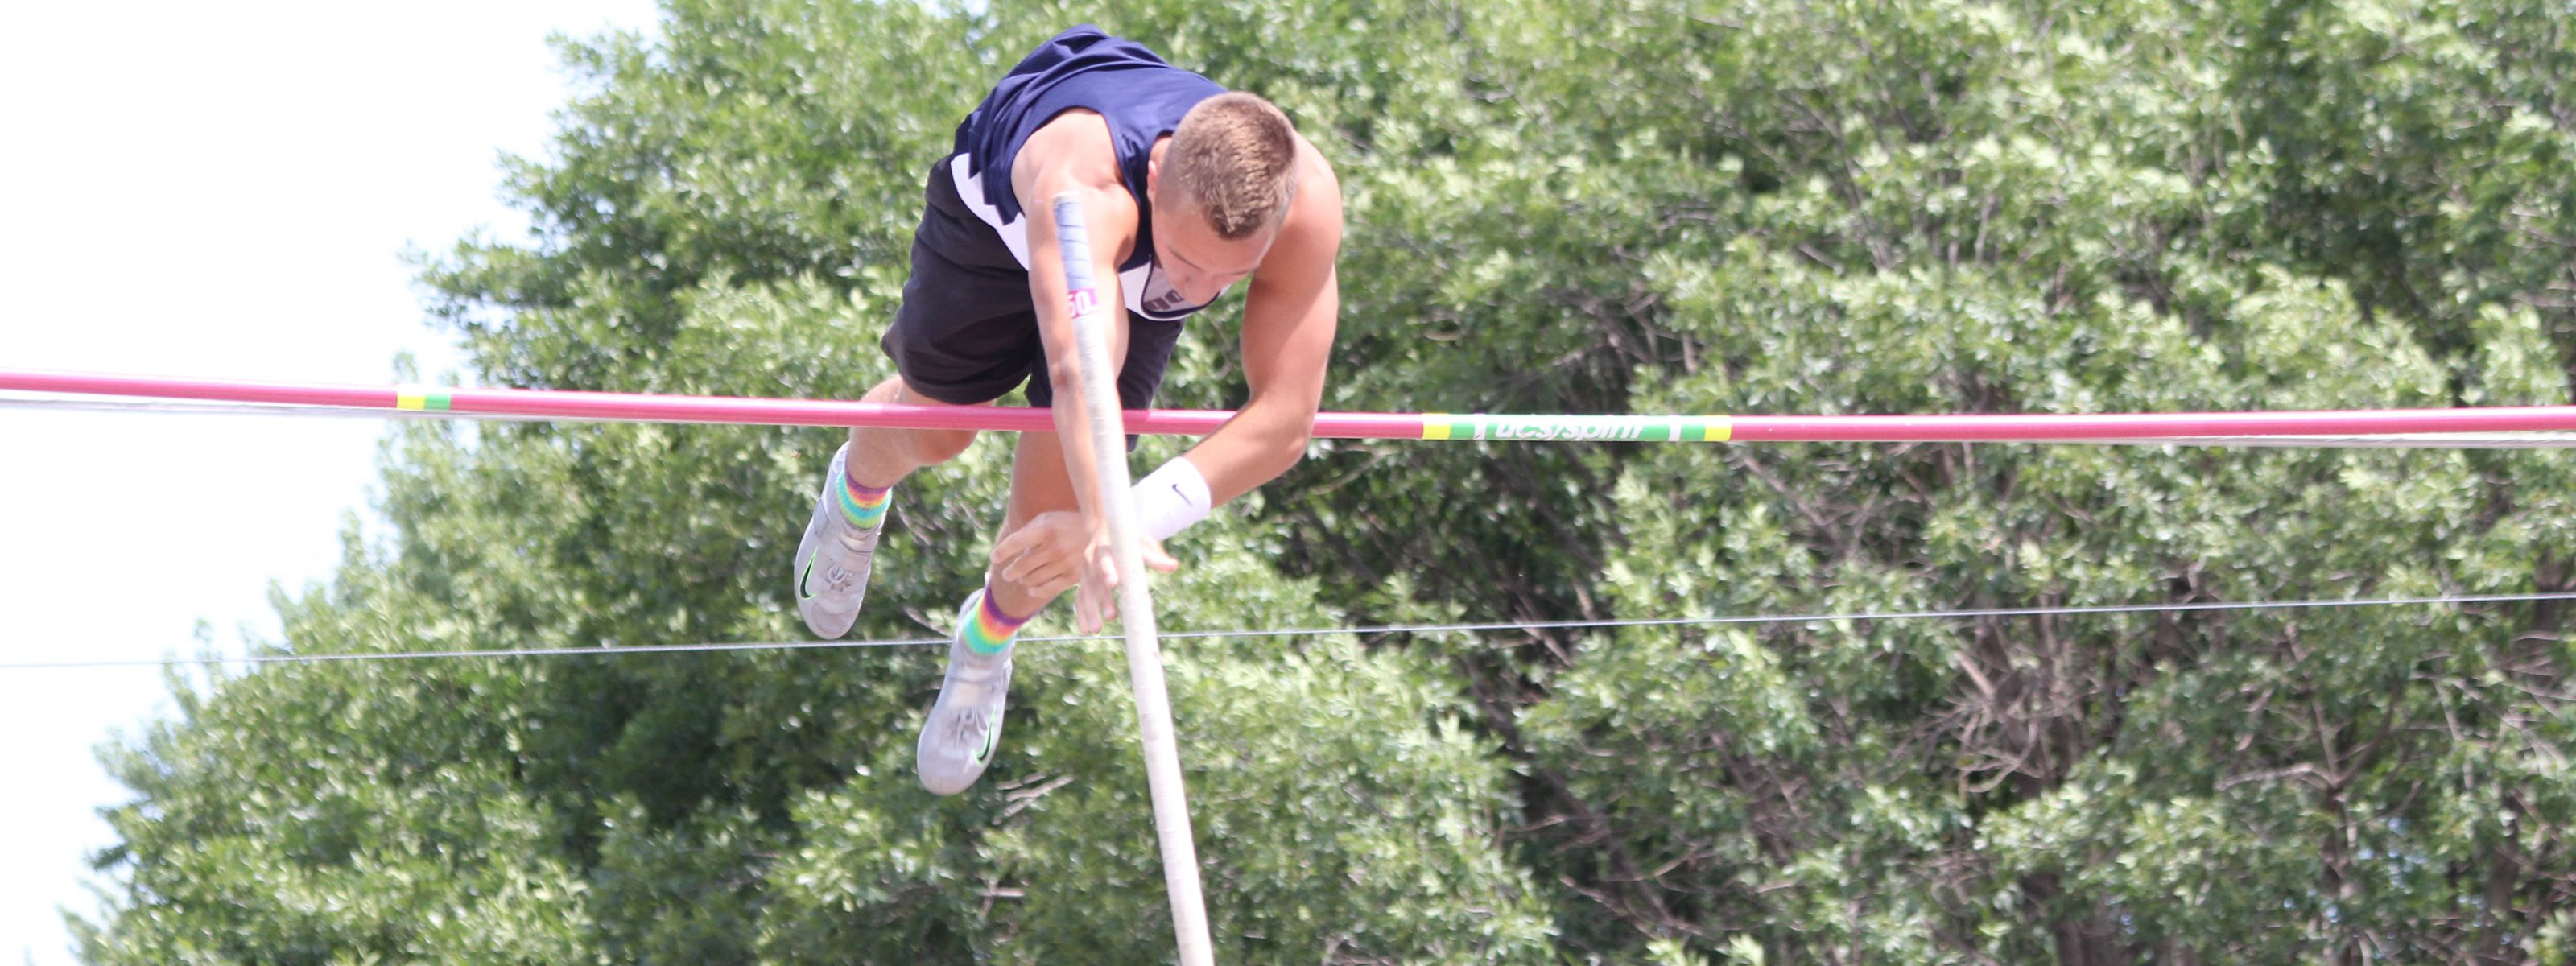 July 4th Pole Vault Competition in Seward, Nebraska